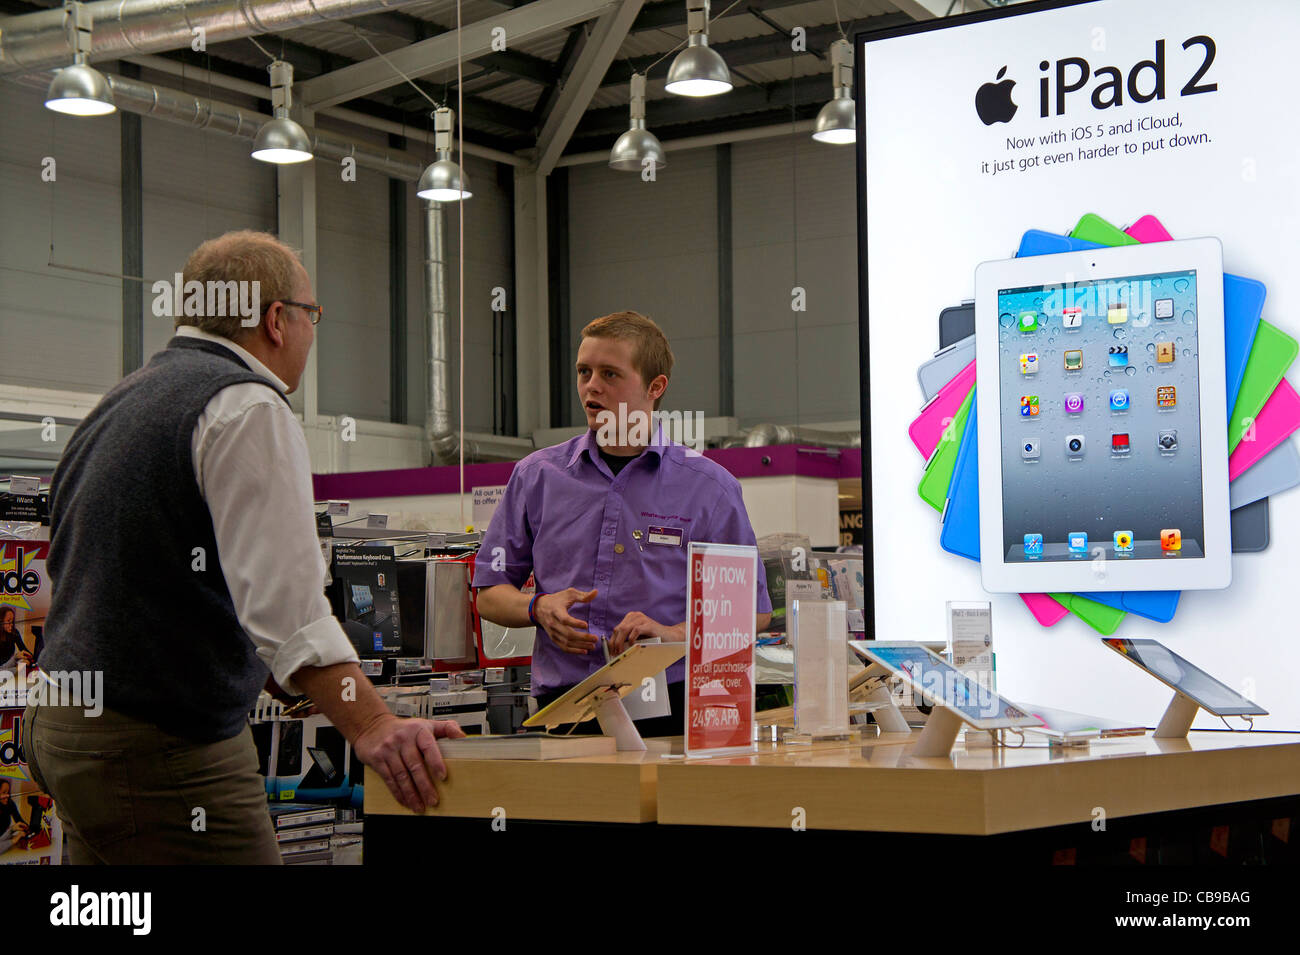 A member of staff at a PC World store demonstrating an Apple IPAD 2 to a customer, UK - Stock Image